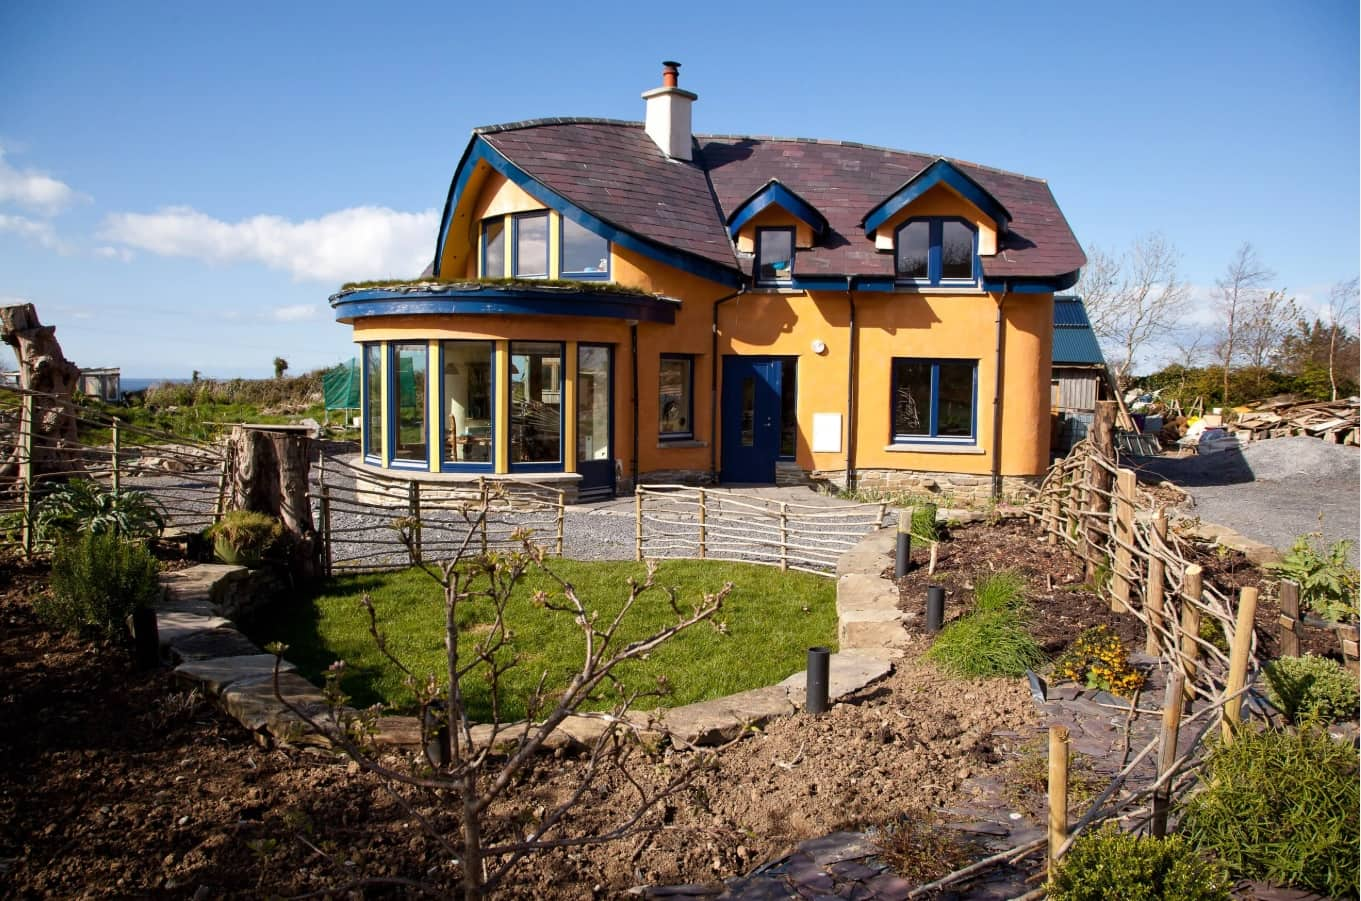 Tiny House on Foundation: Pros and Cons of Living in a Small House. American house with sunroom and cultivated land plot